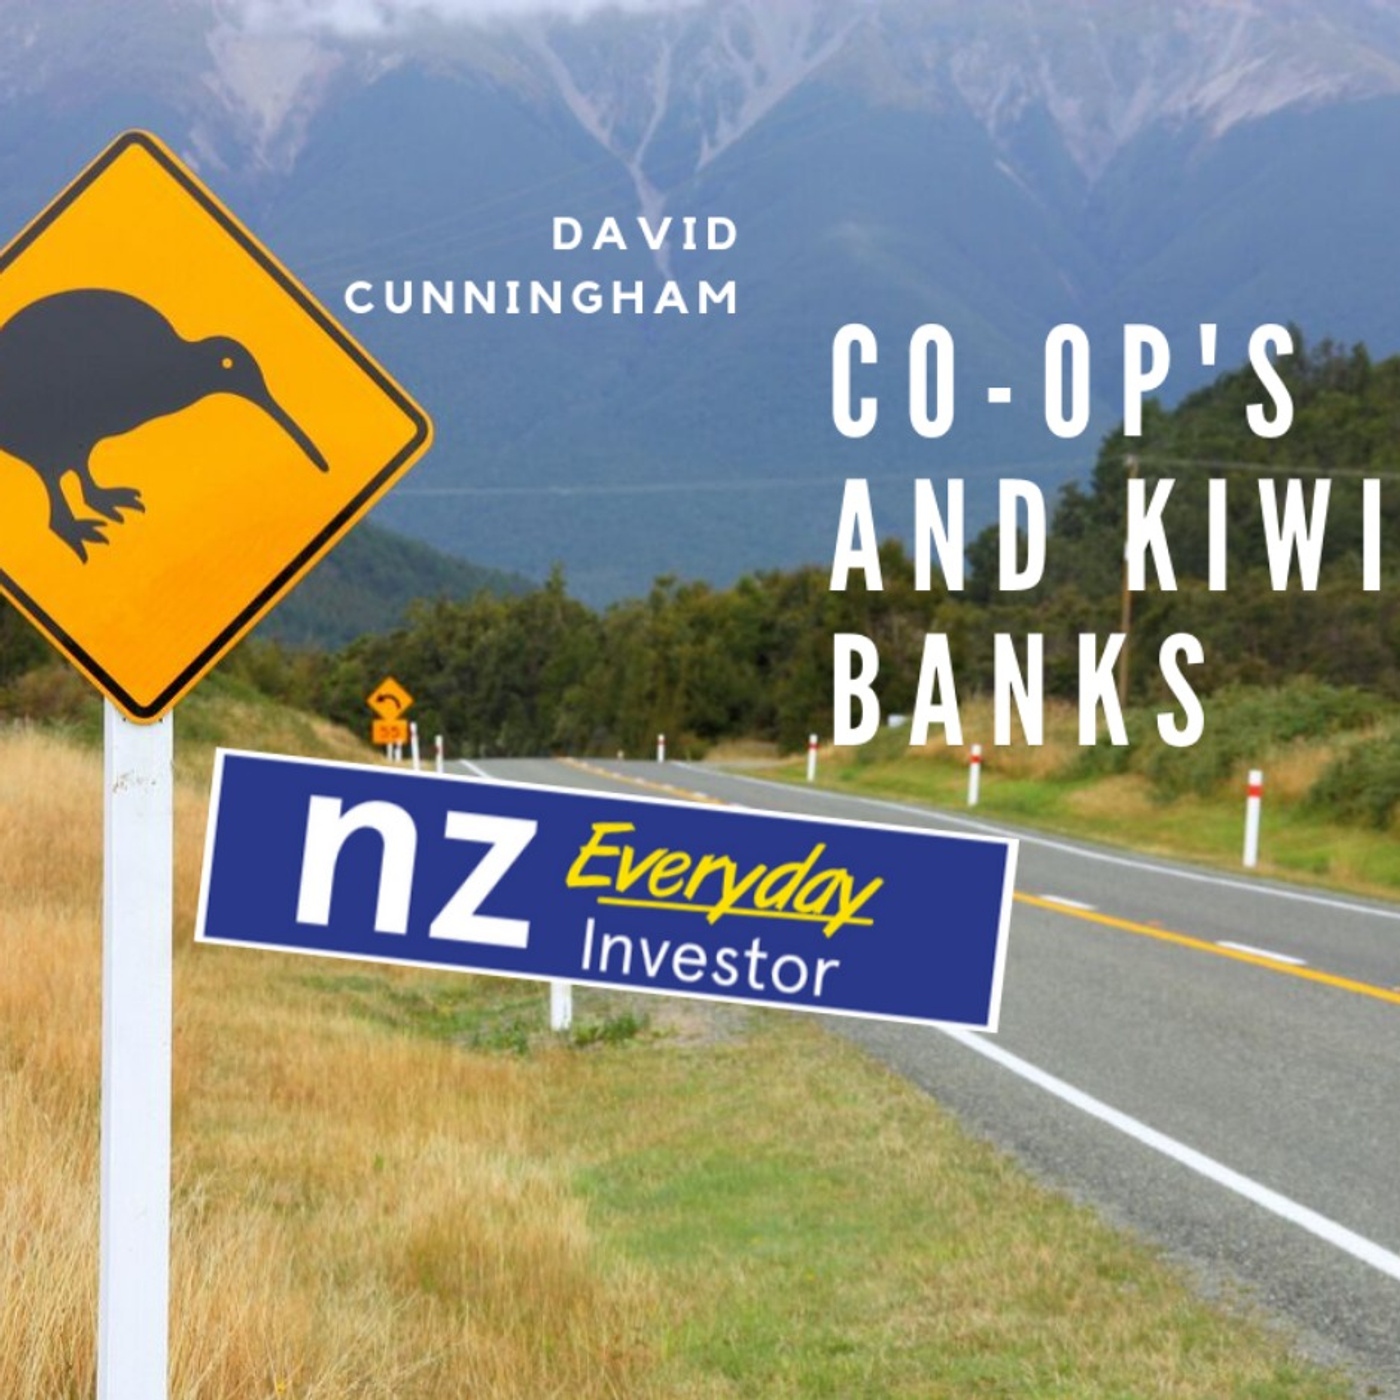 Co-ops and Kiwi banks - David Cunningham